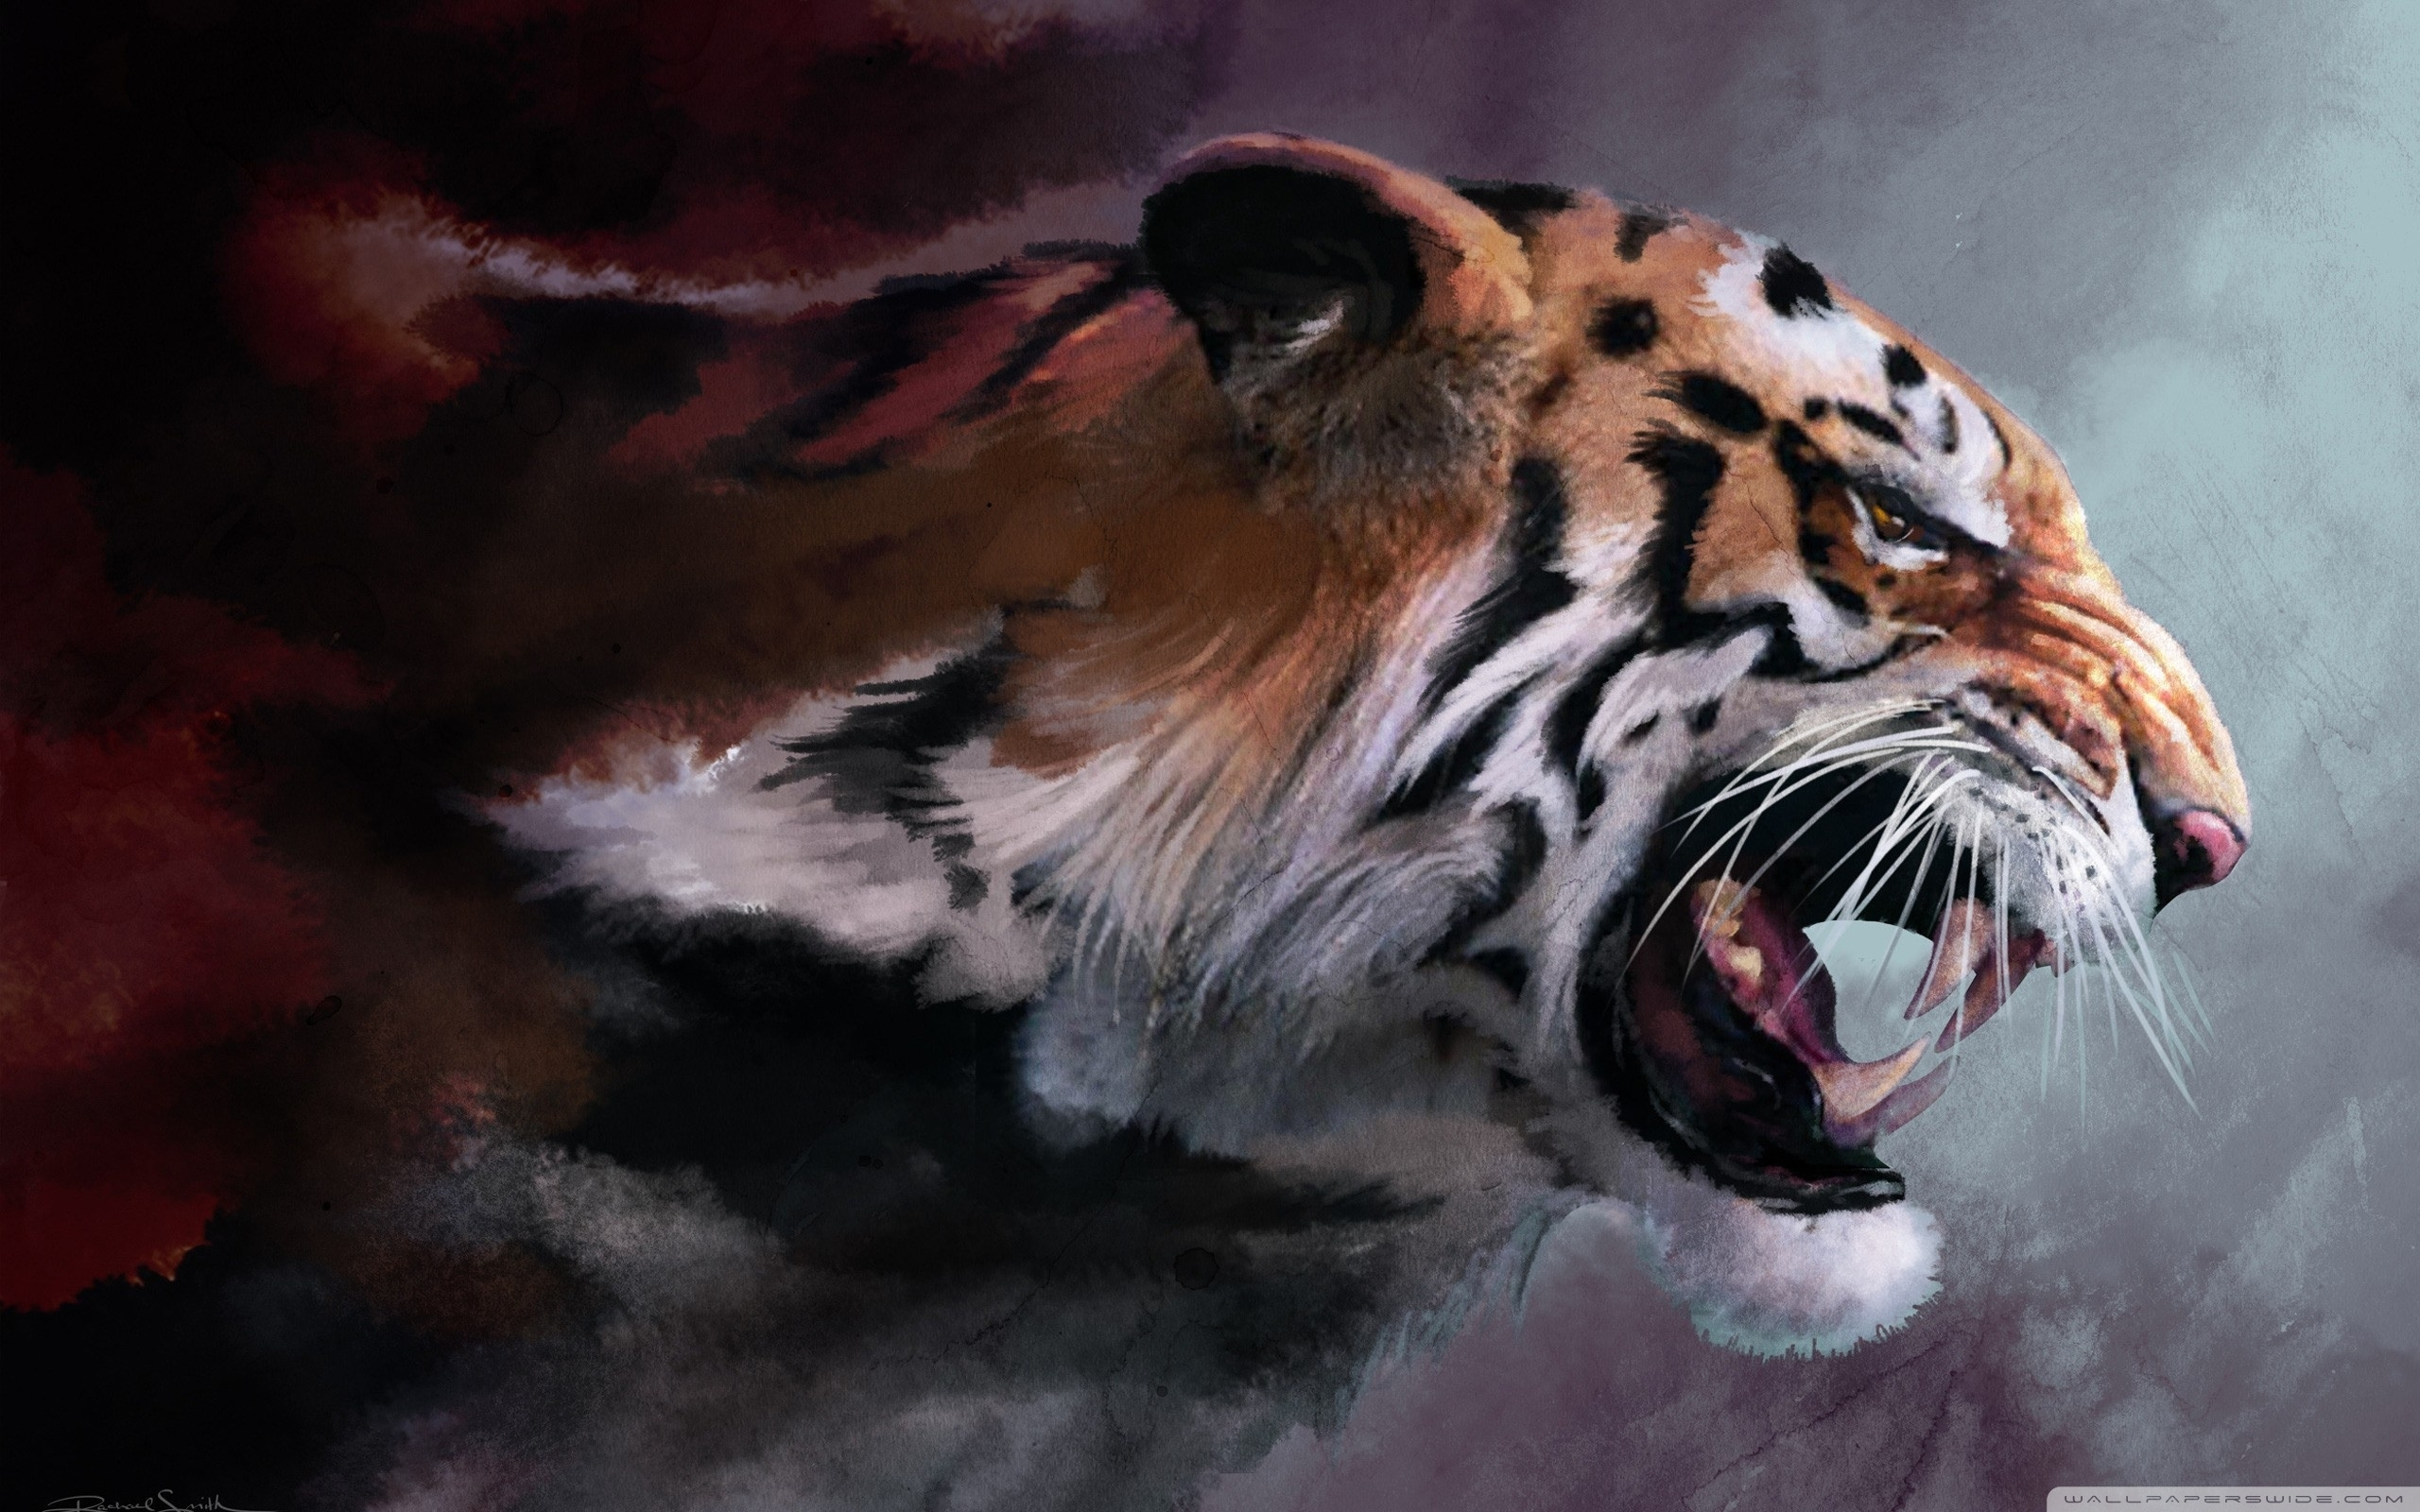 angry tiger painting ❤ 4k hd desktop wallpaper for 4k ultra hd tv